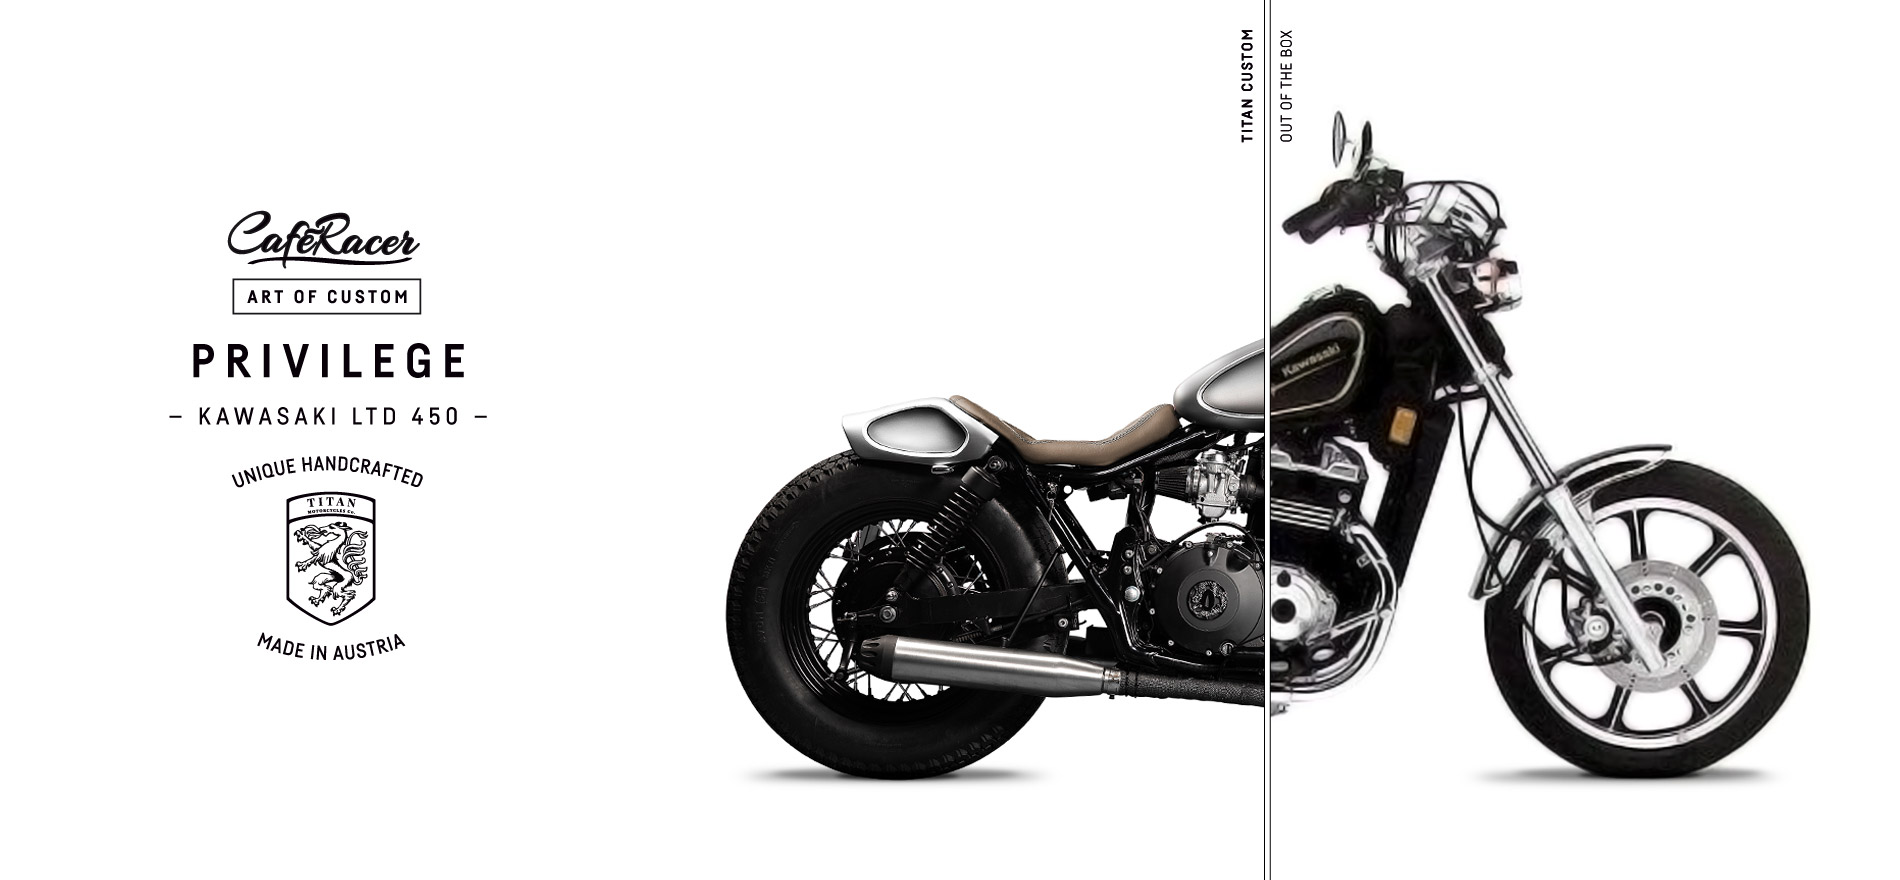 TITAN_CustomBike_CafeRacer_Graz_MadeInAustria_Before-After_TITAN-Privilege_Kawasaki-LTD450_Motorradumbau_Left